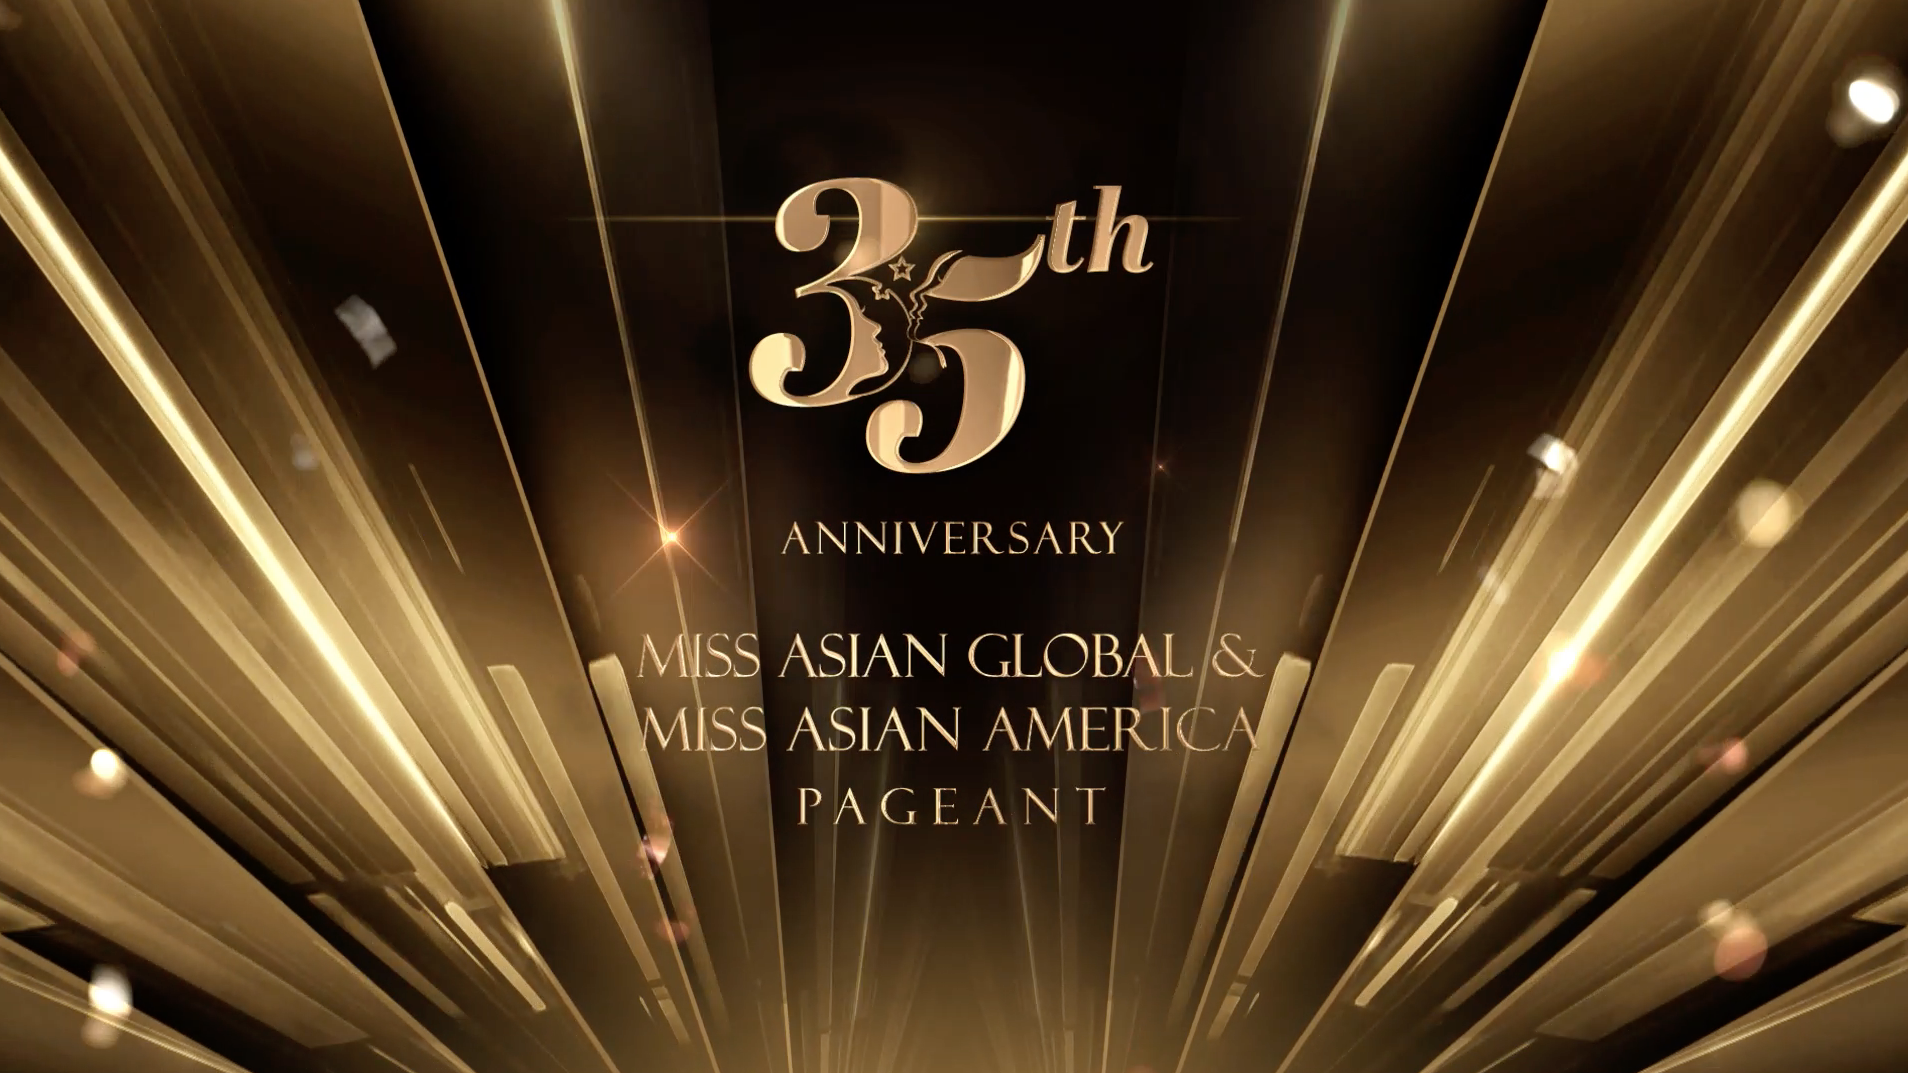 35th Miss Asian Global